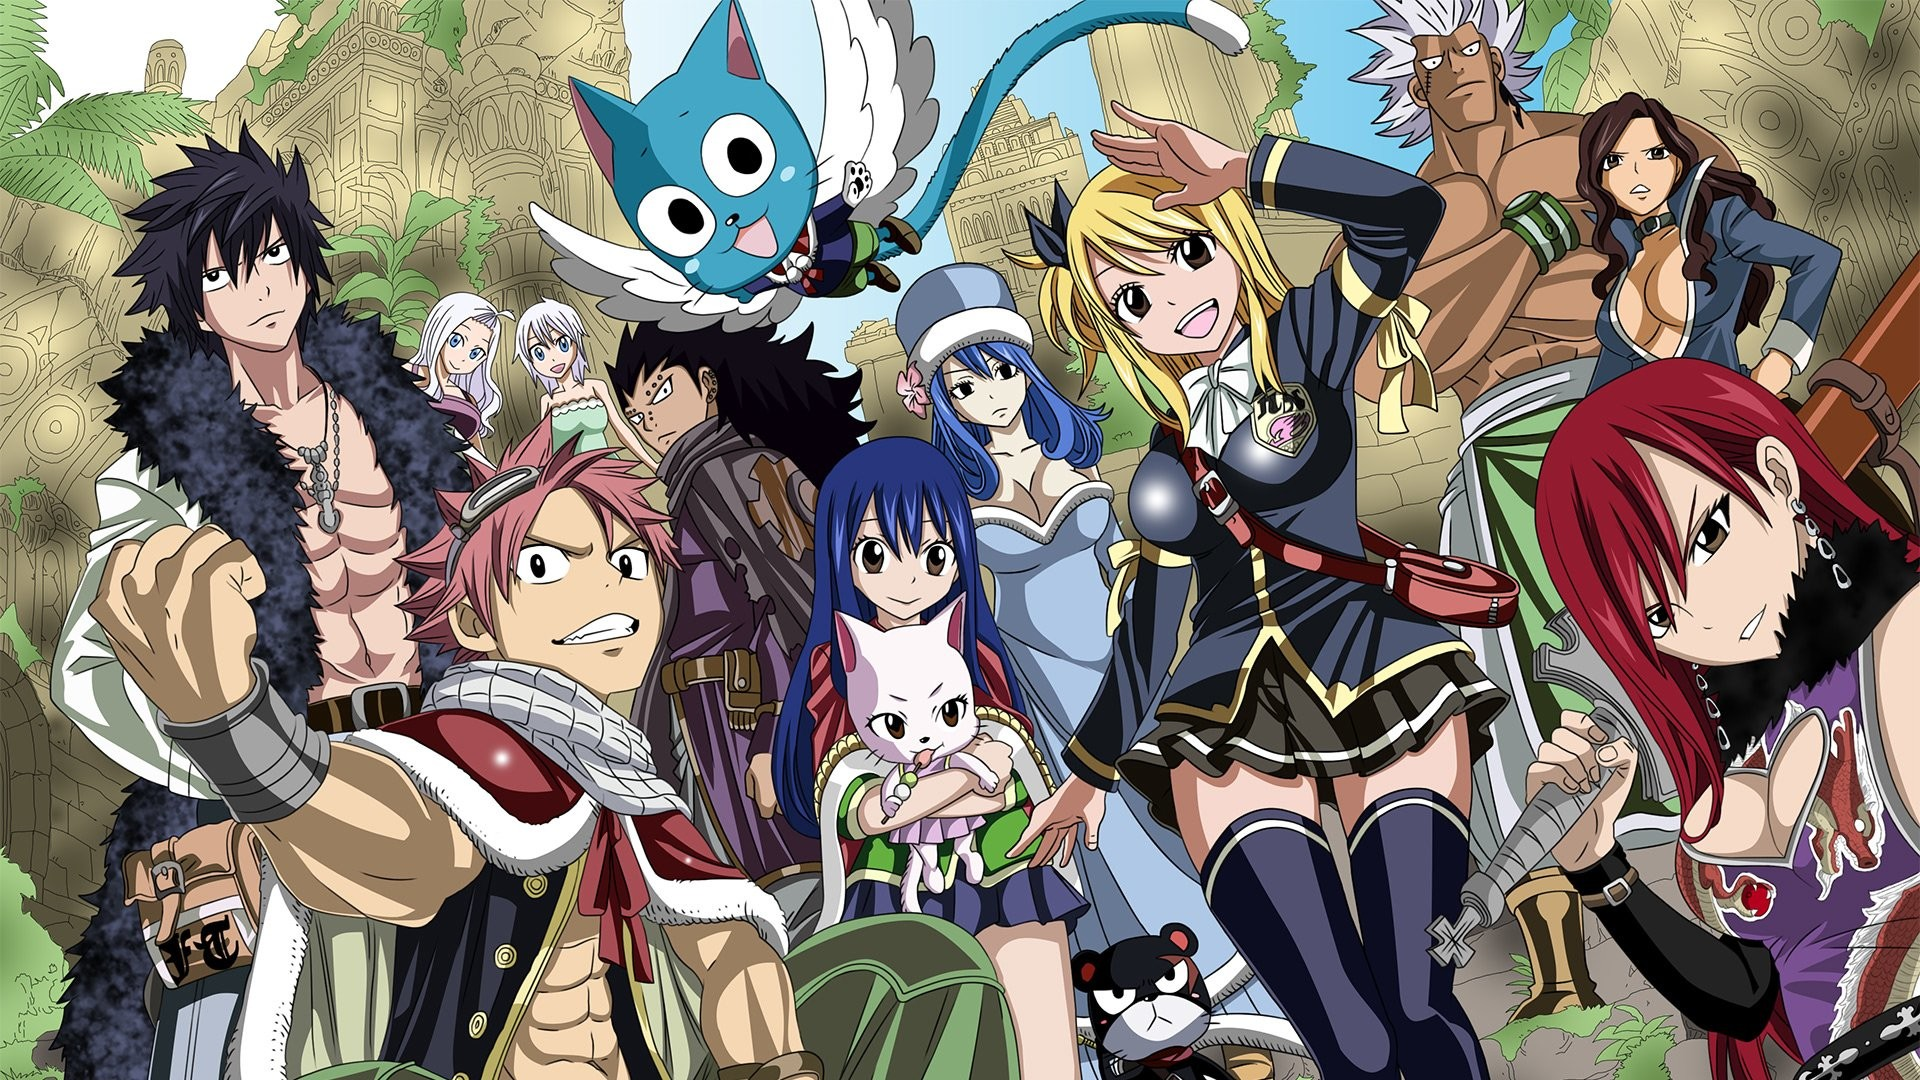 1920x1080 Anime - Fairy Tail Lucy Heartfilia Natsu Dragneel Happy (Fairy Tail) Wendy  Marvell Erza